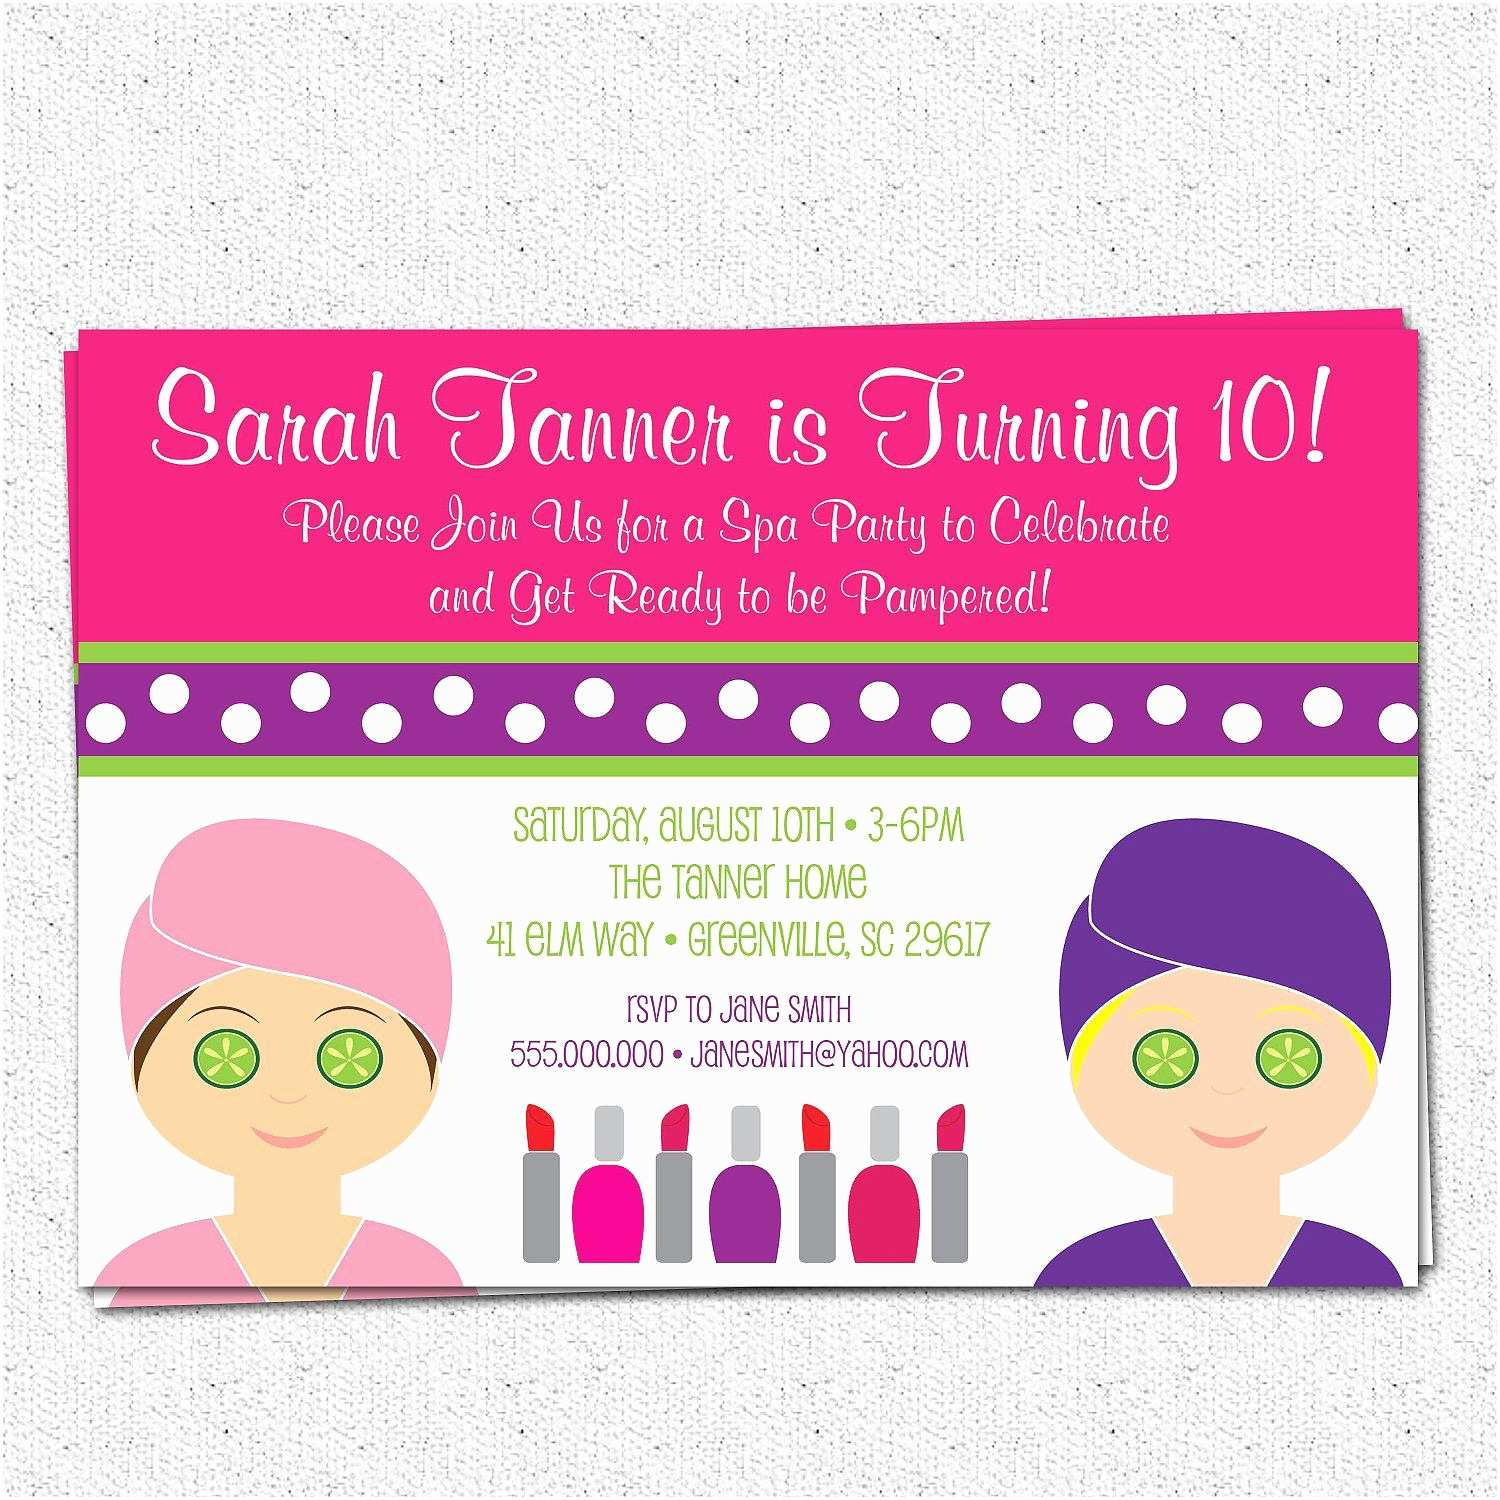 Party Invitation Template Spa Party Invitations